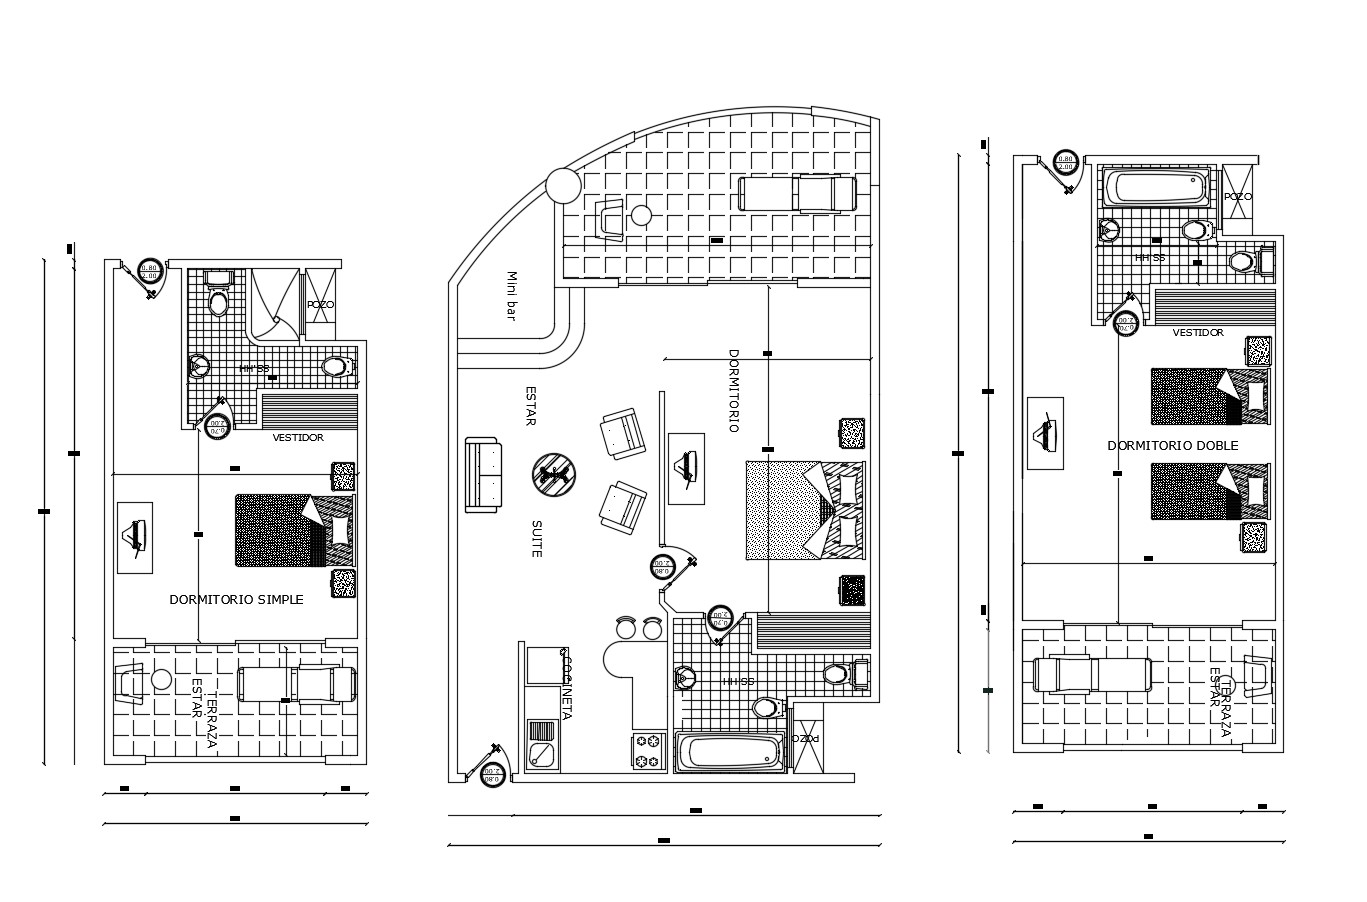 Enlarge detail of bedroom in autocad